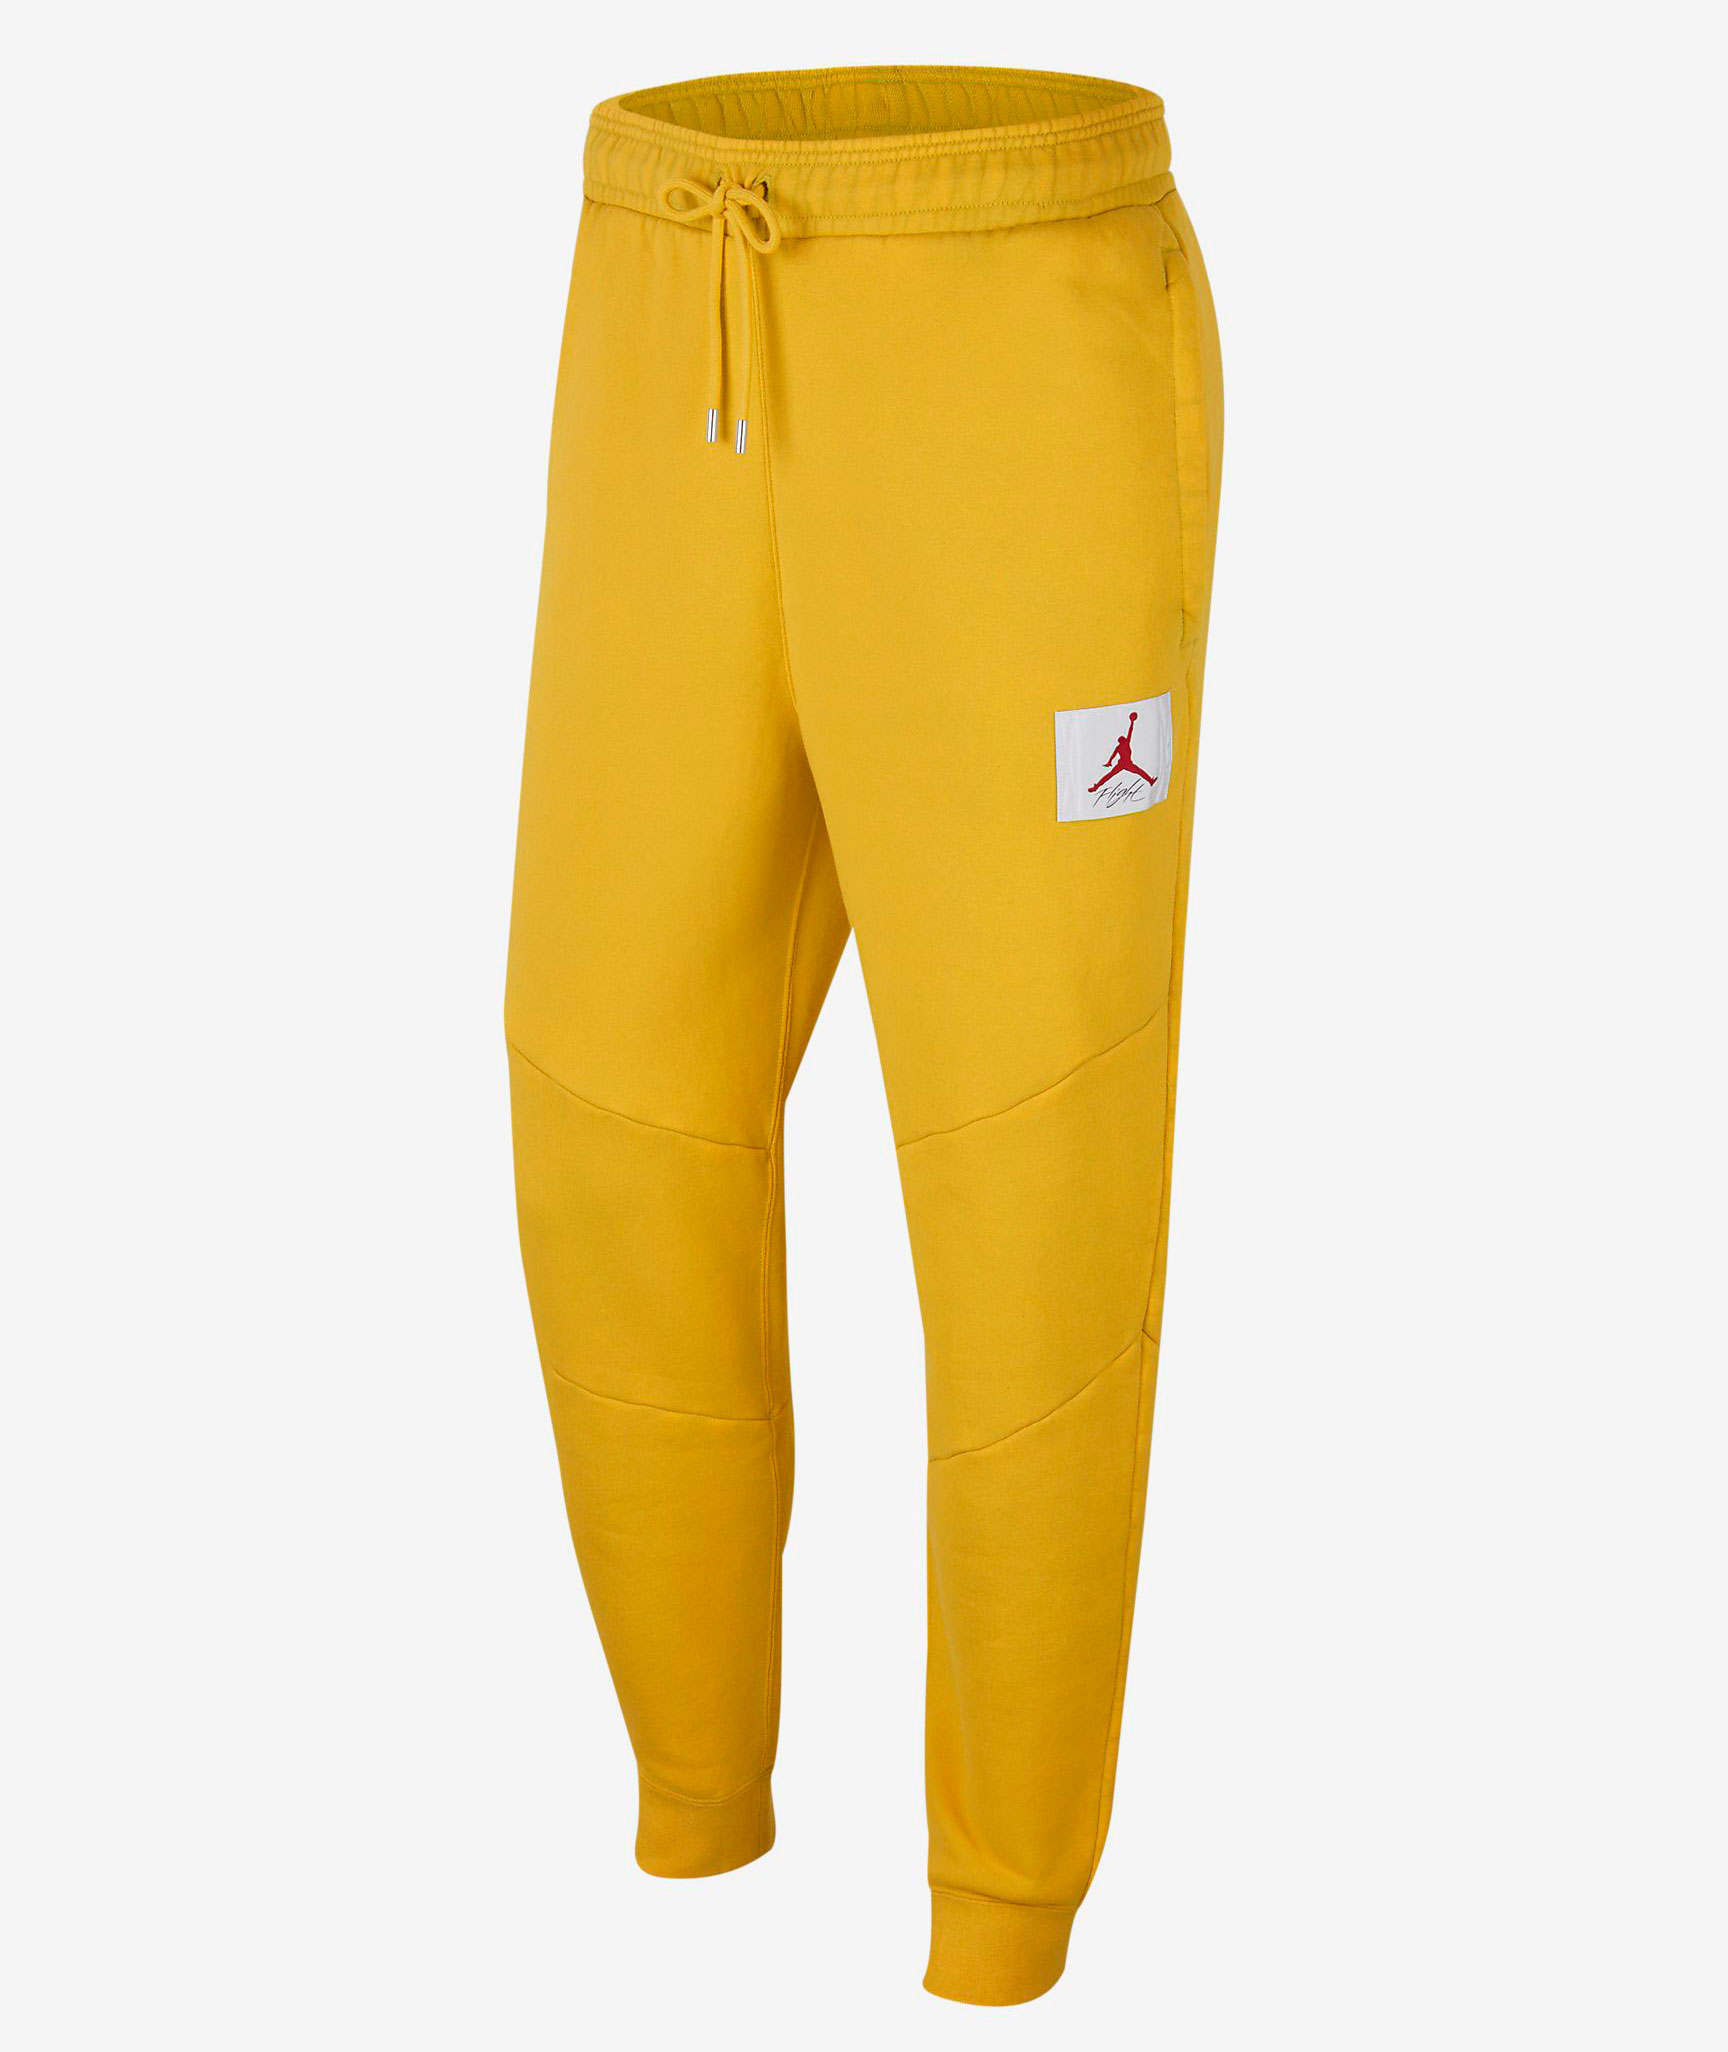 jordan-3-animal-instinct-2-yellow-fleece-pants-match